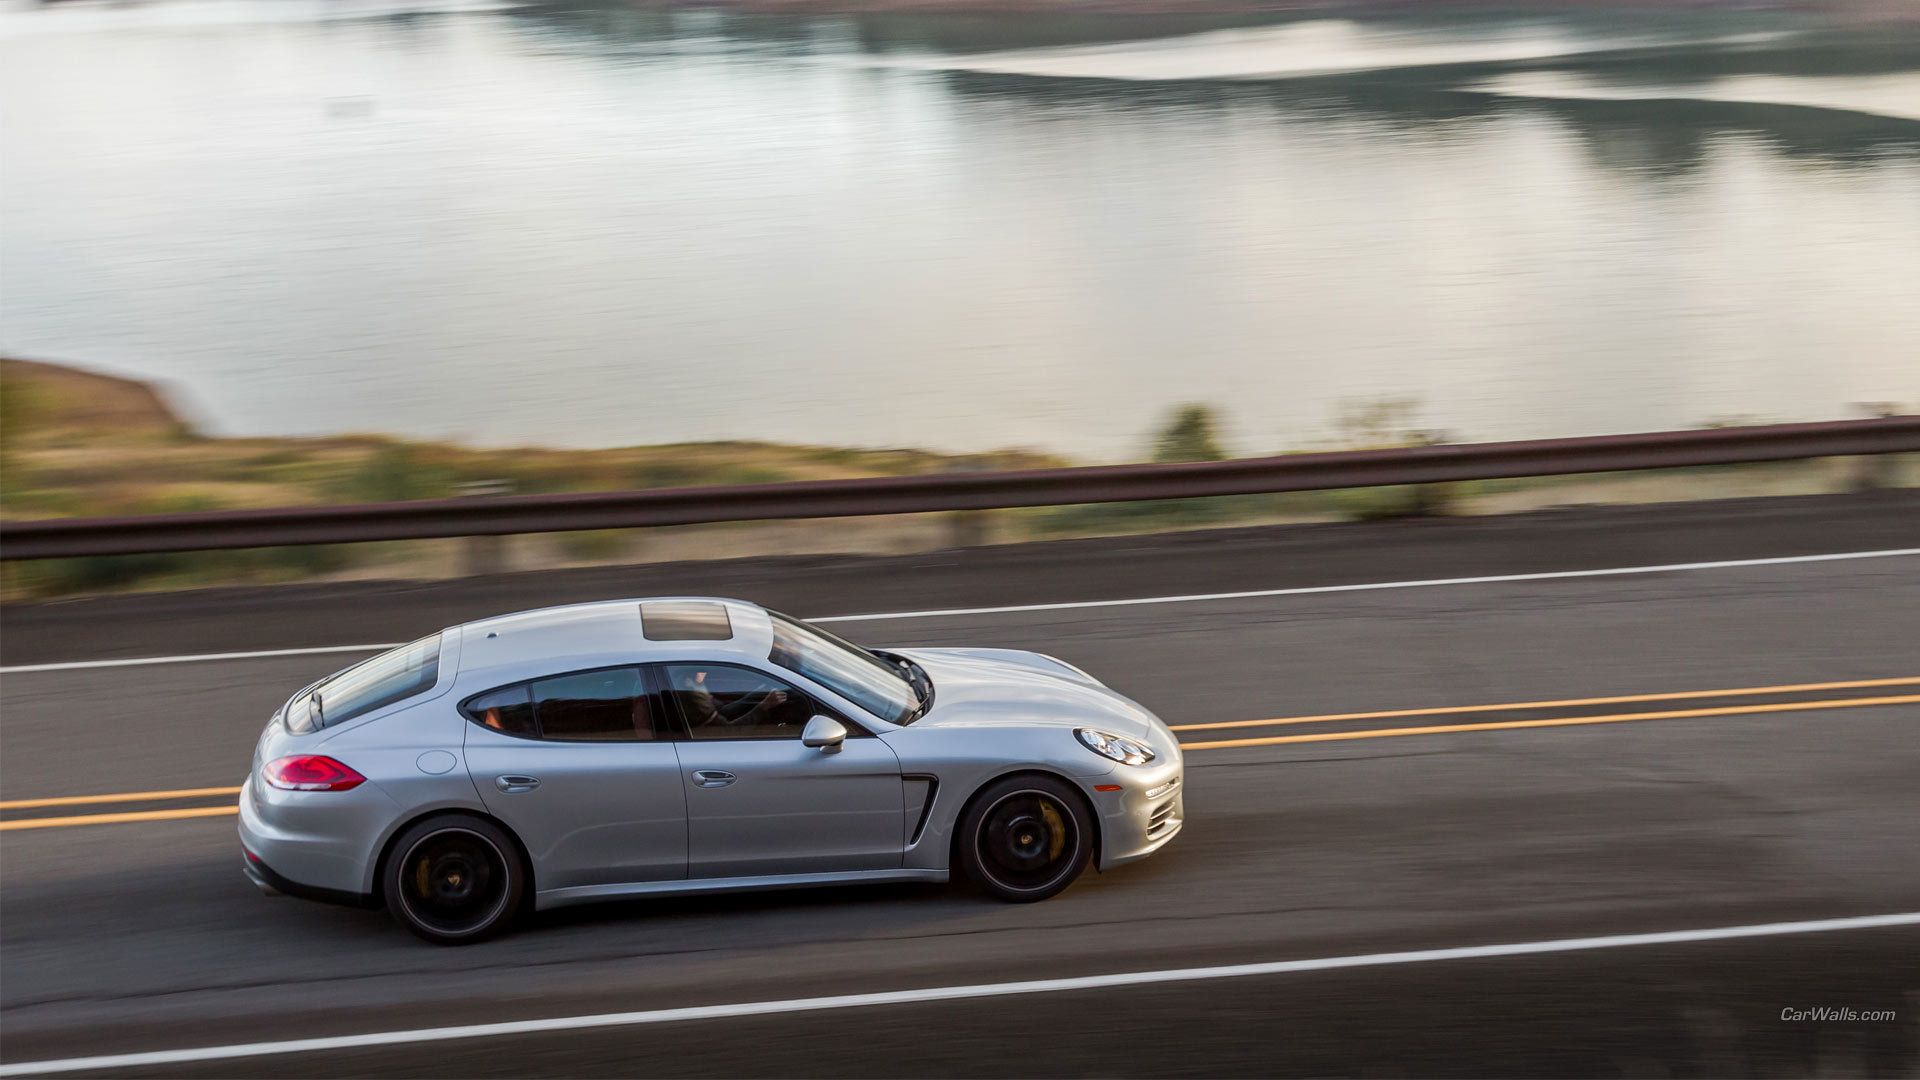 Download full hd 1920x1080 Porsche Panamera PC wallpaper ID:27847 for free